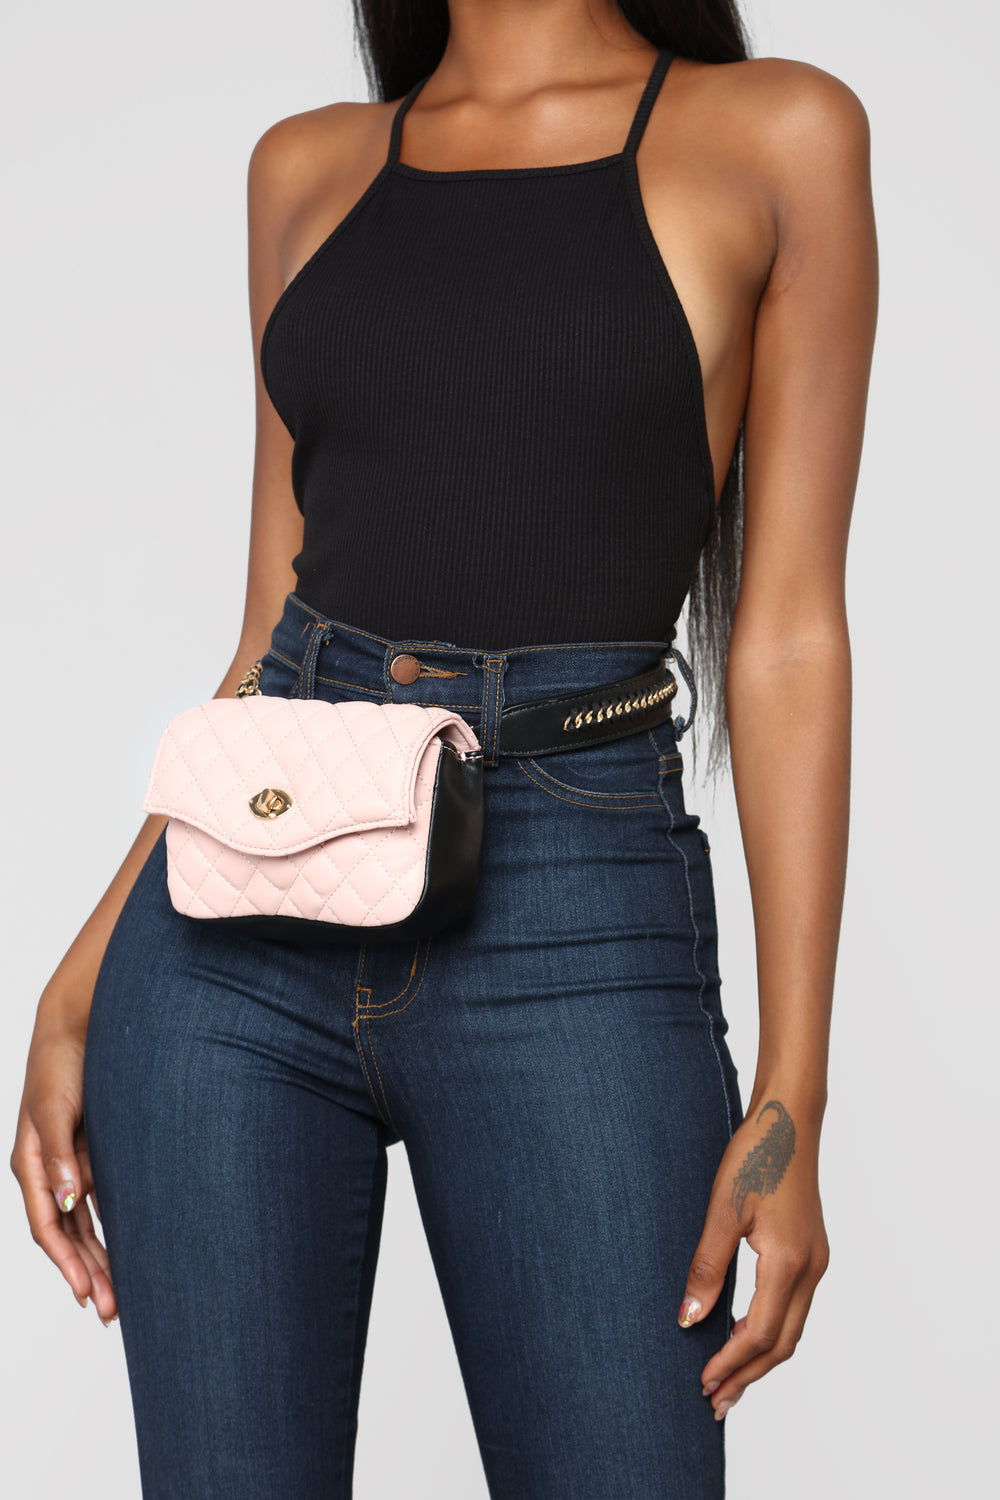 Chantelle Quilted Fanny Pack - Blush